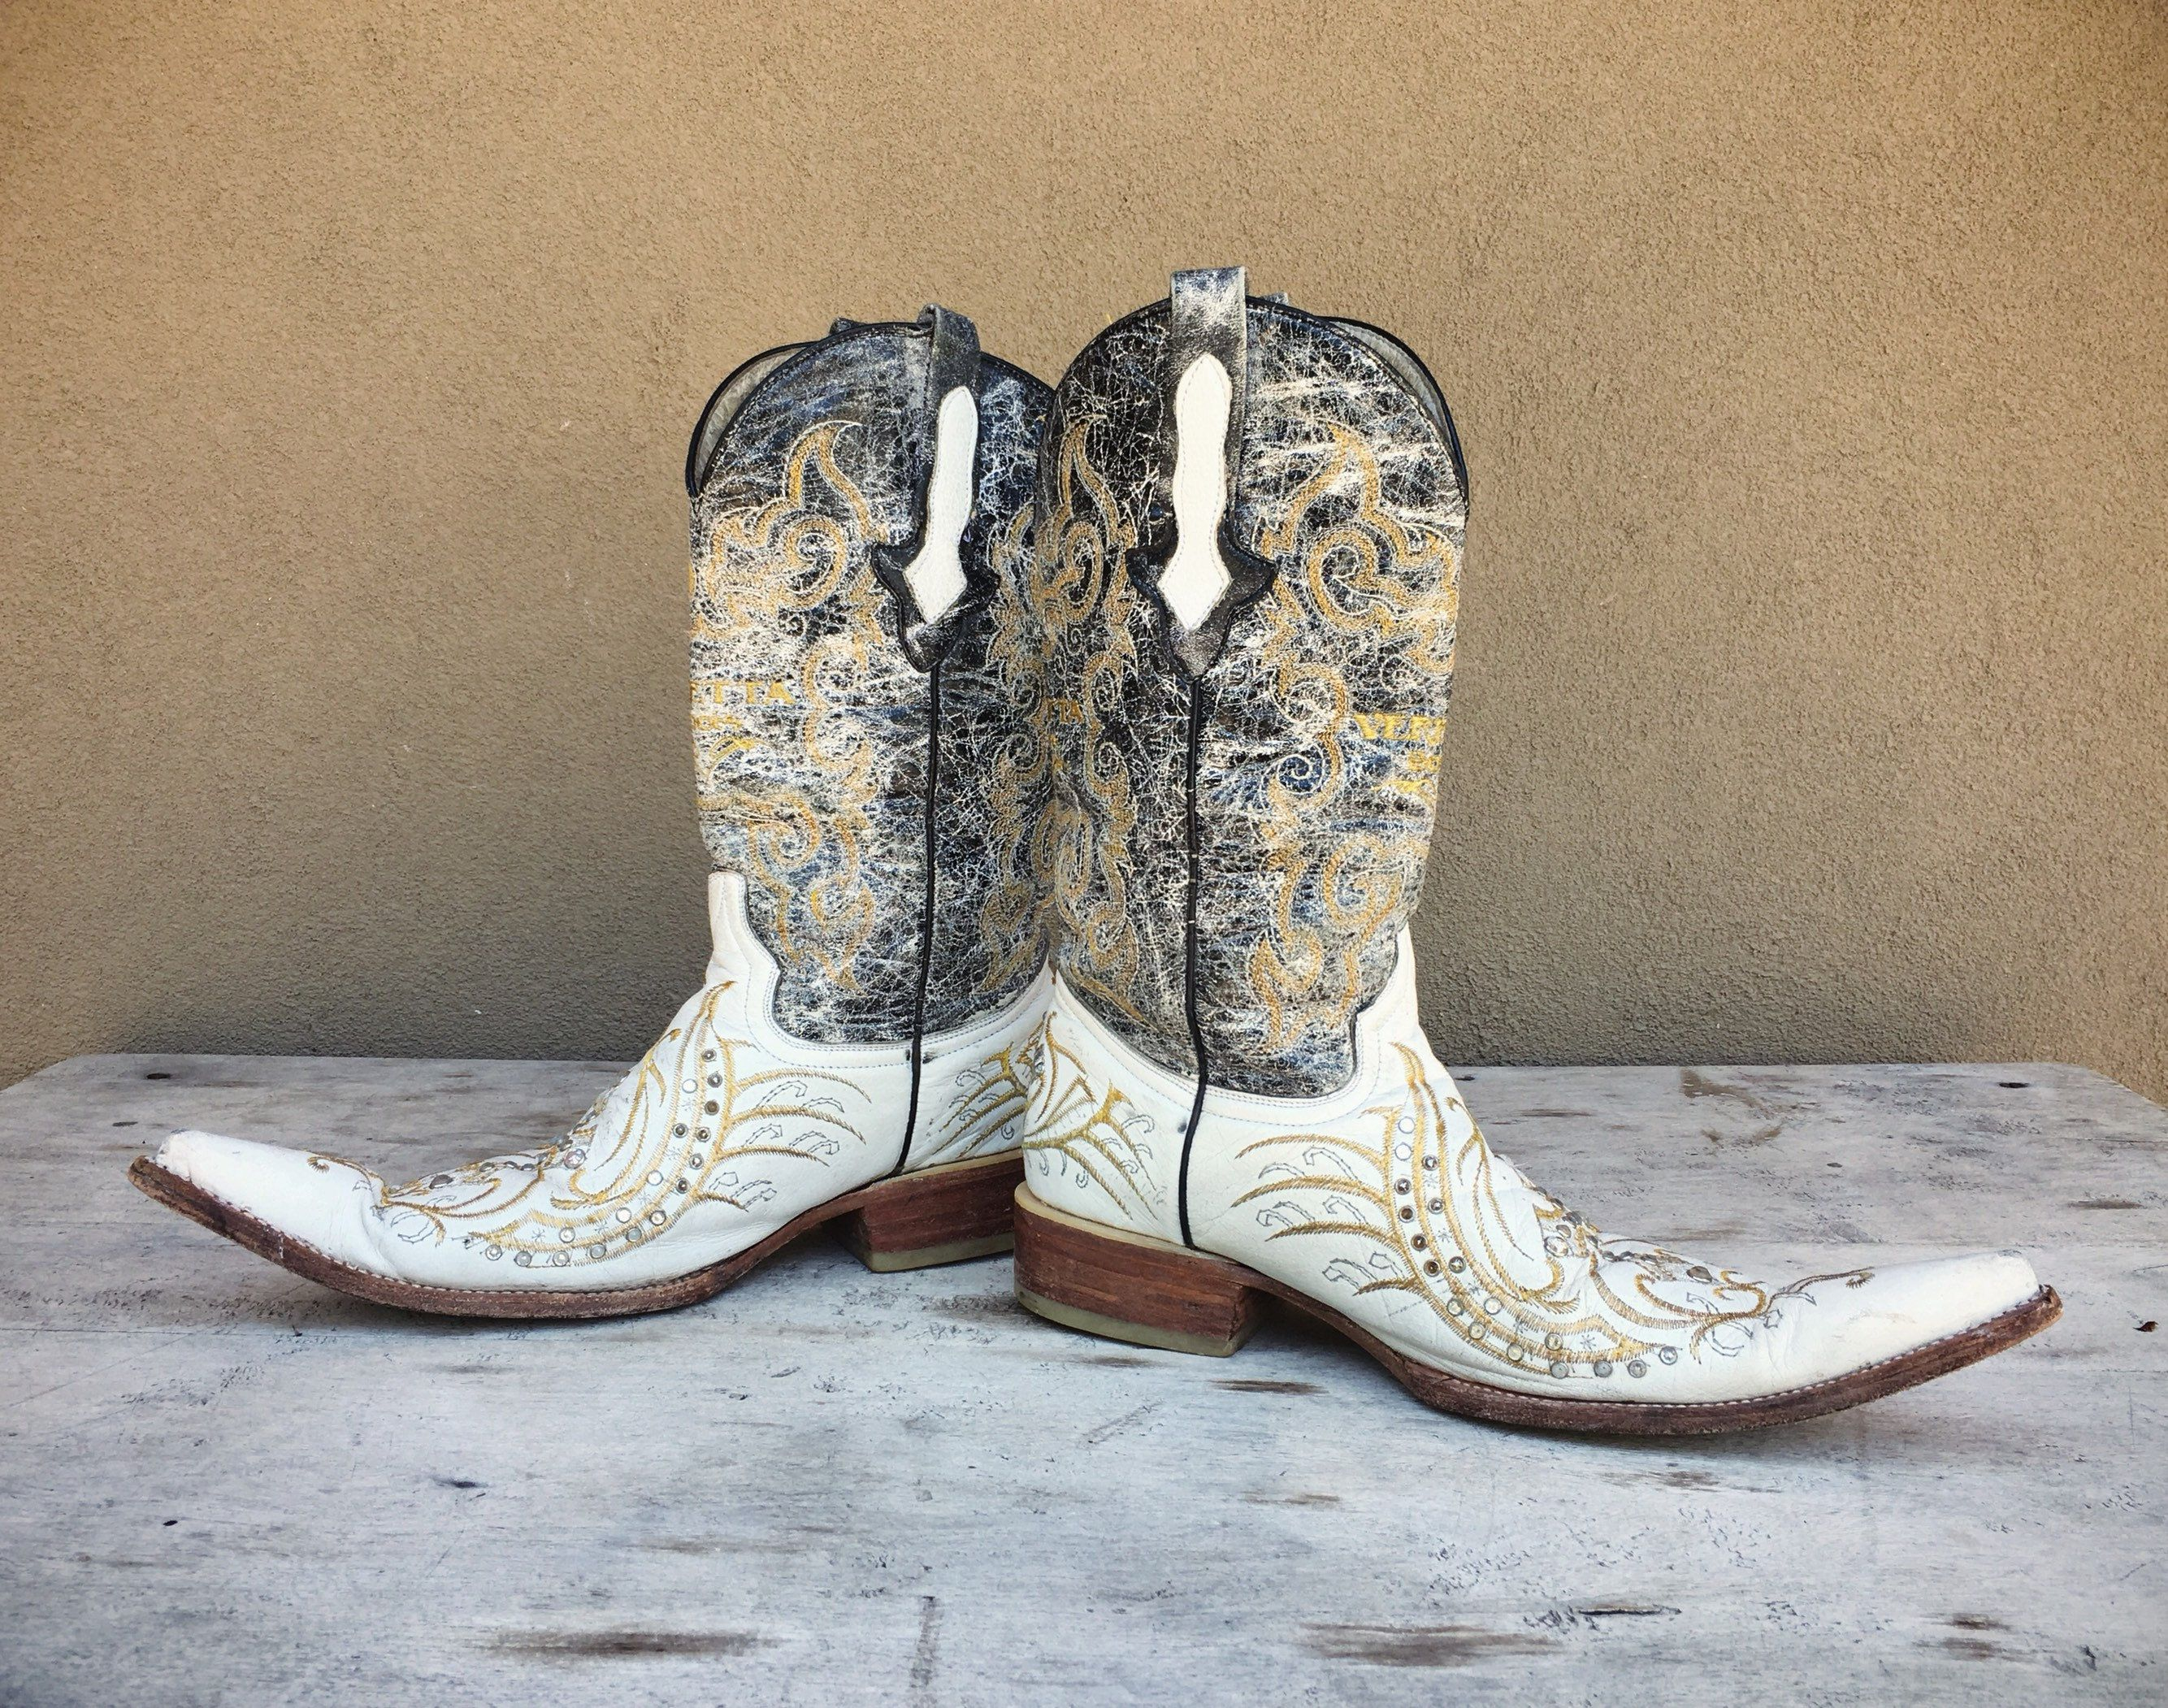 3a6ce0cf43f26 Vintage Mexican Pointy Toe Boot Men's Cowboy Boots White and Black ...